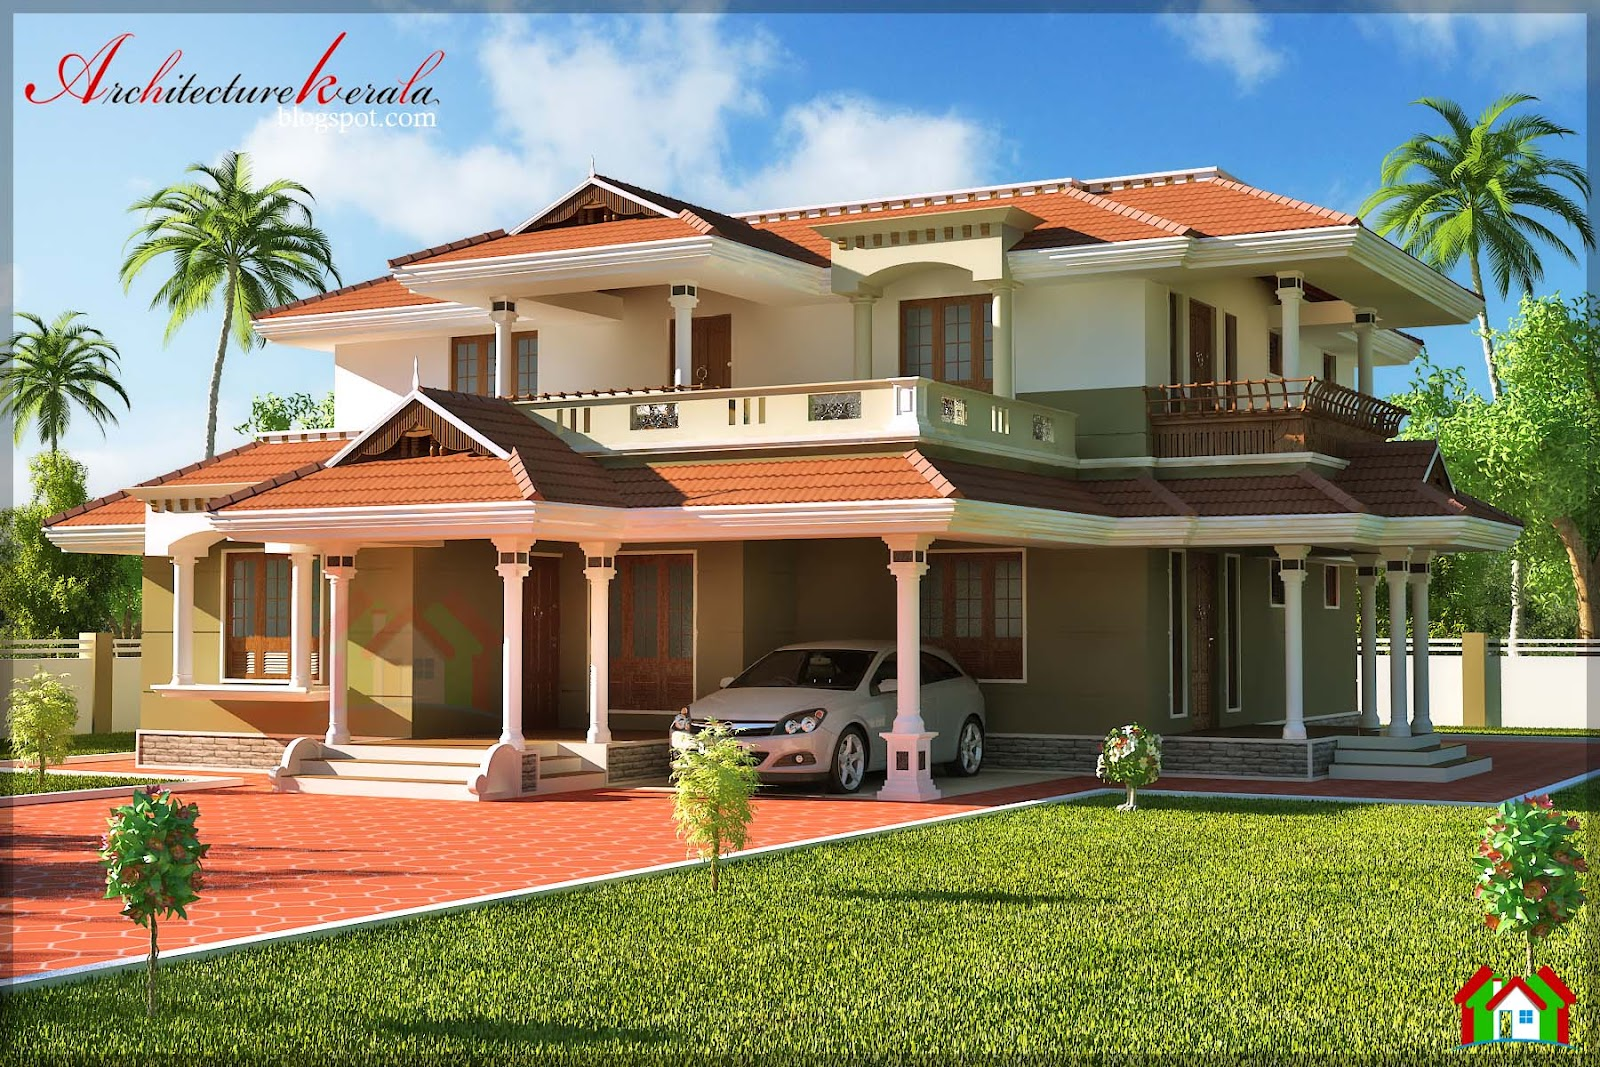 Bed room traditional style house design architecture kerala for Home designs traditional